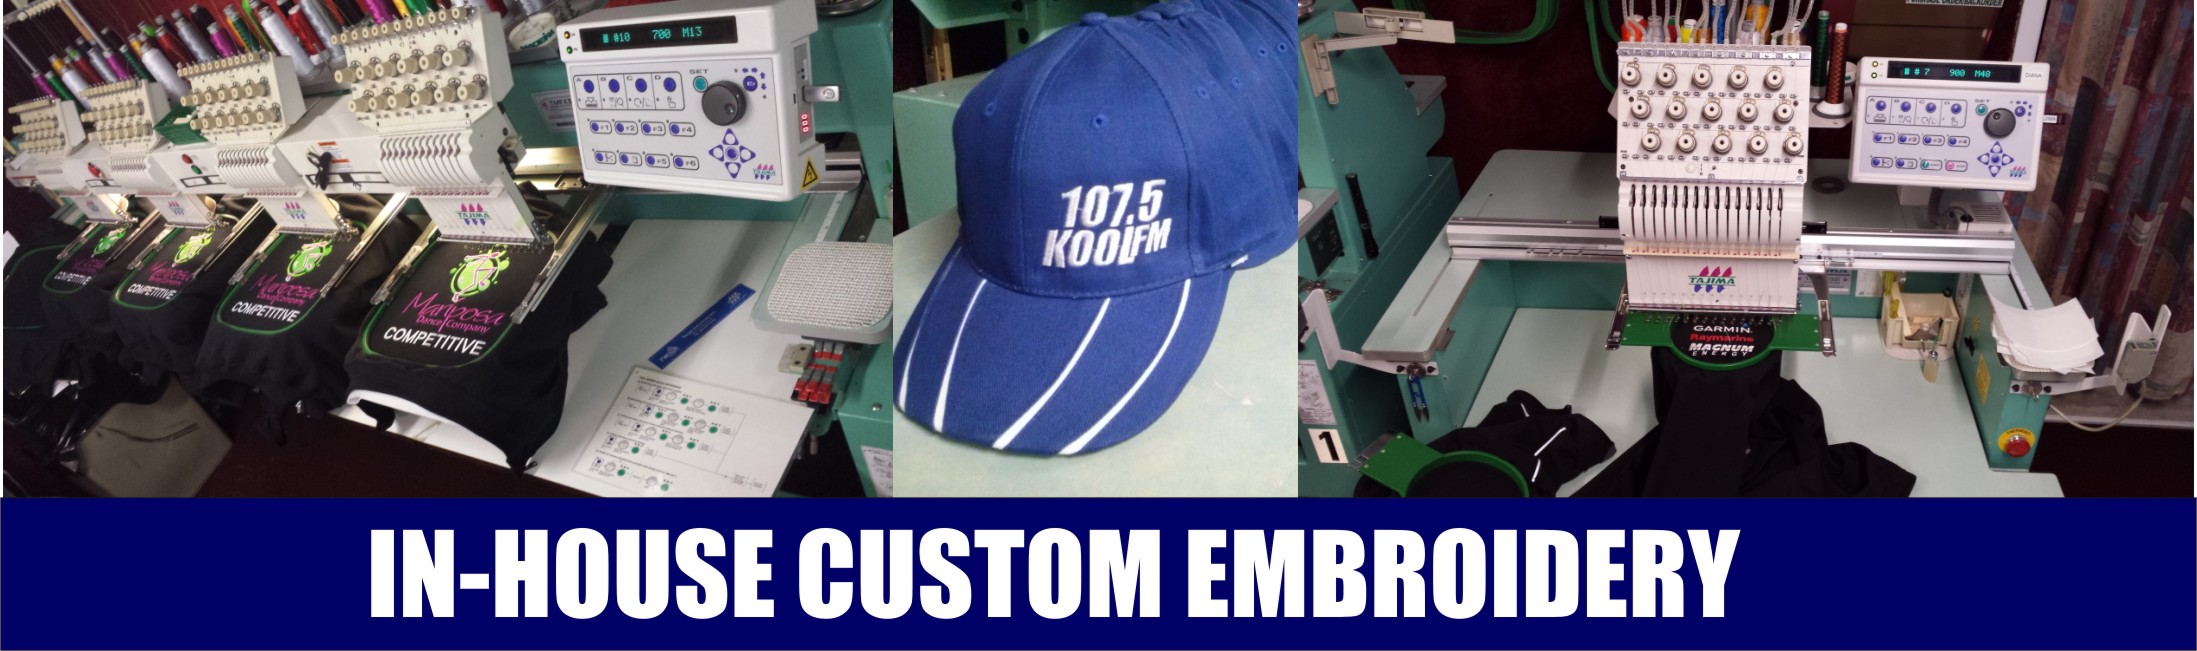 in-house-custom-embroidery-2017